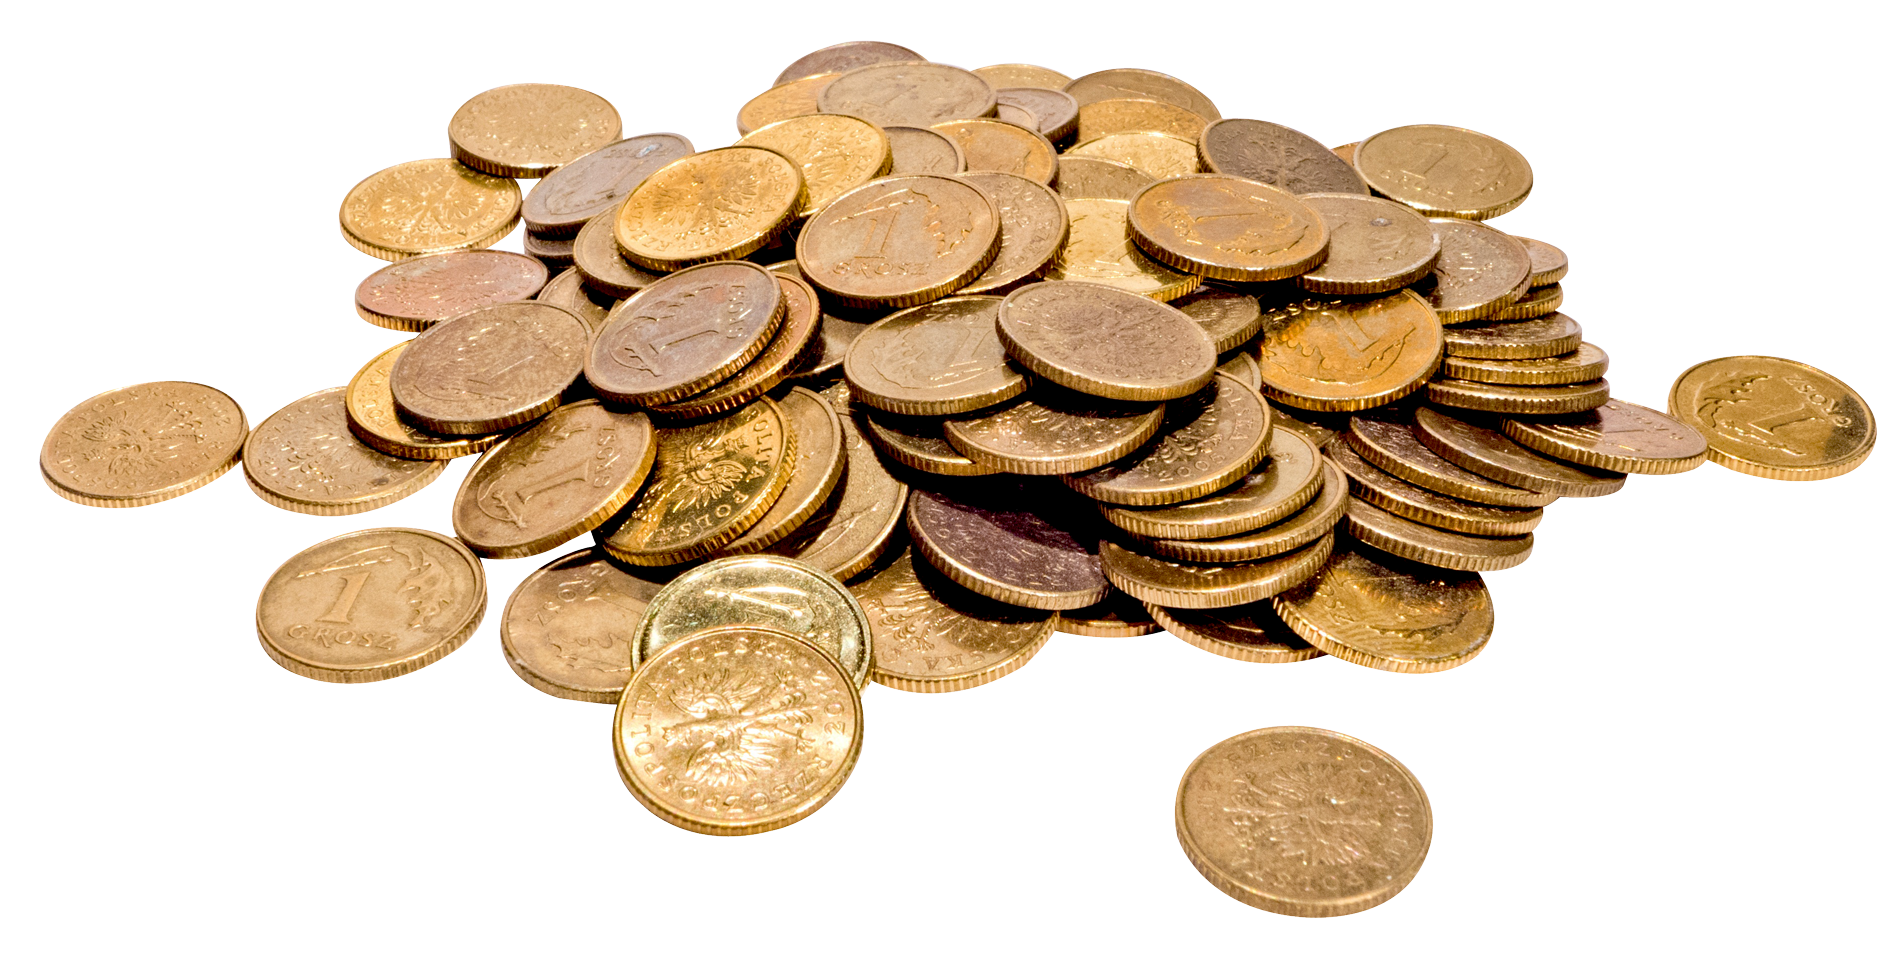 money coins png transparent image pngpix #16564